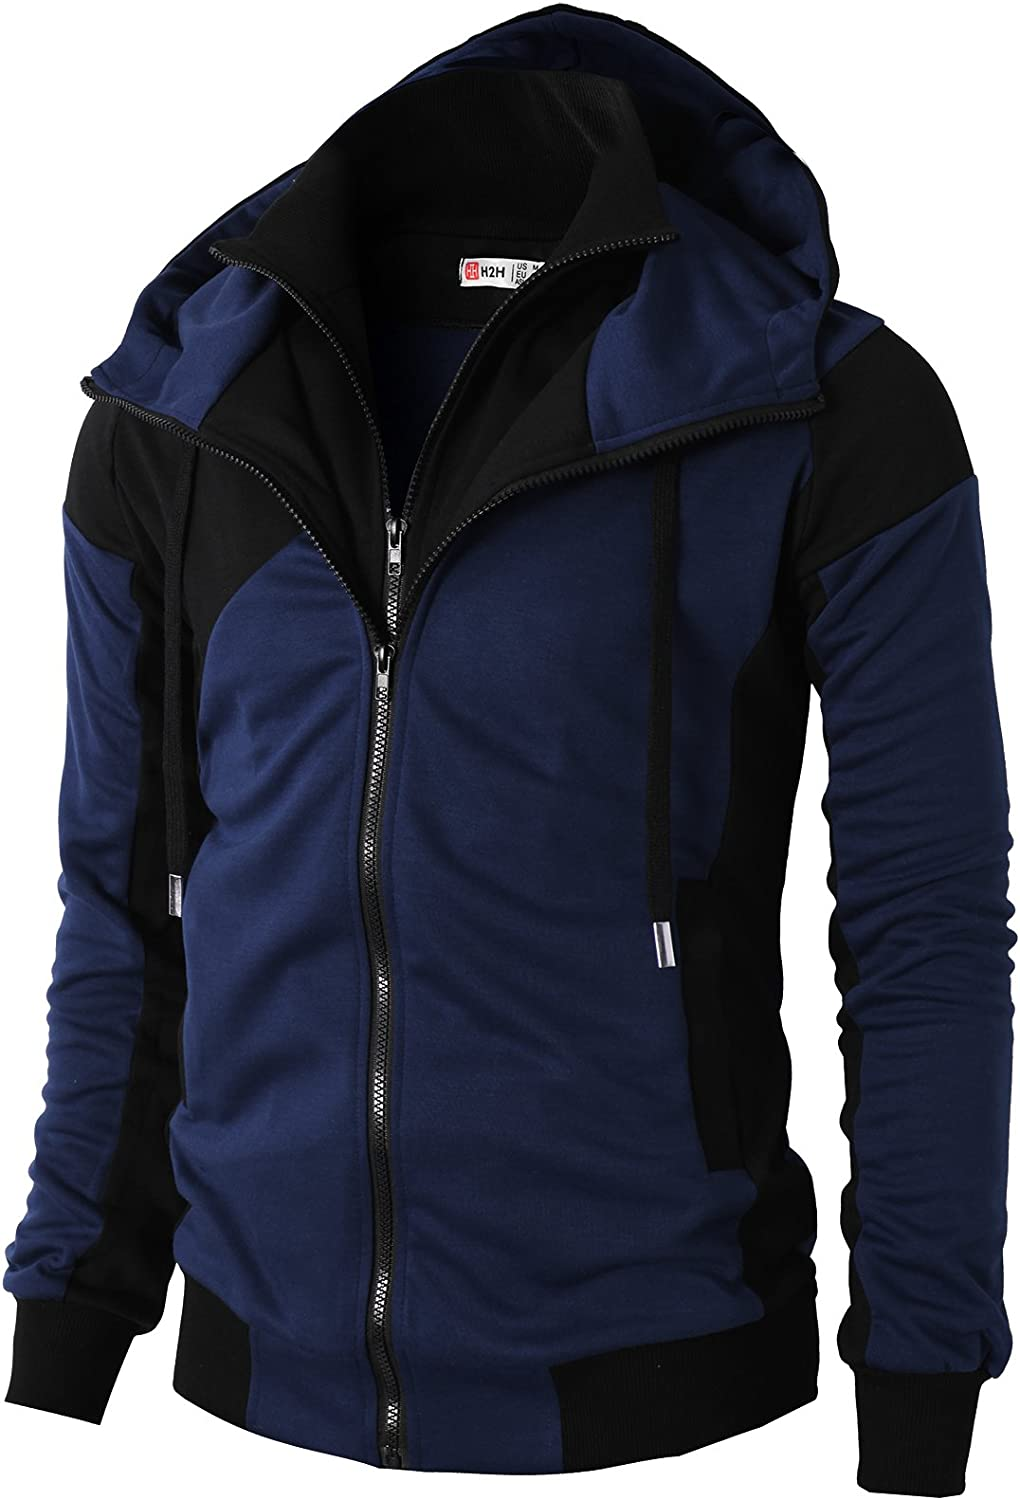 H2H Mens Fashion Double Zipper Closer Hoodie Zip-Up with Two Tone color